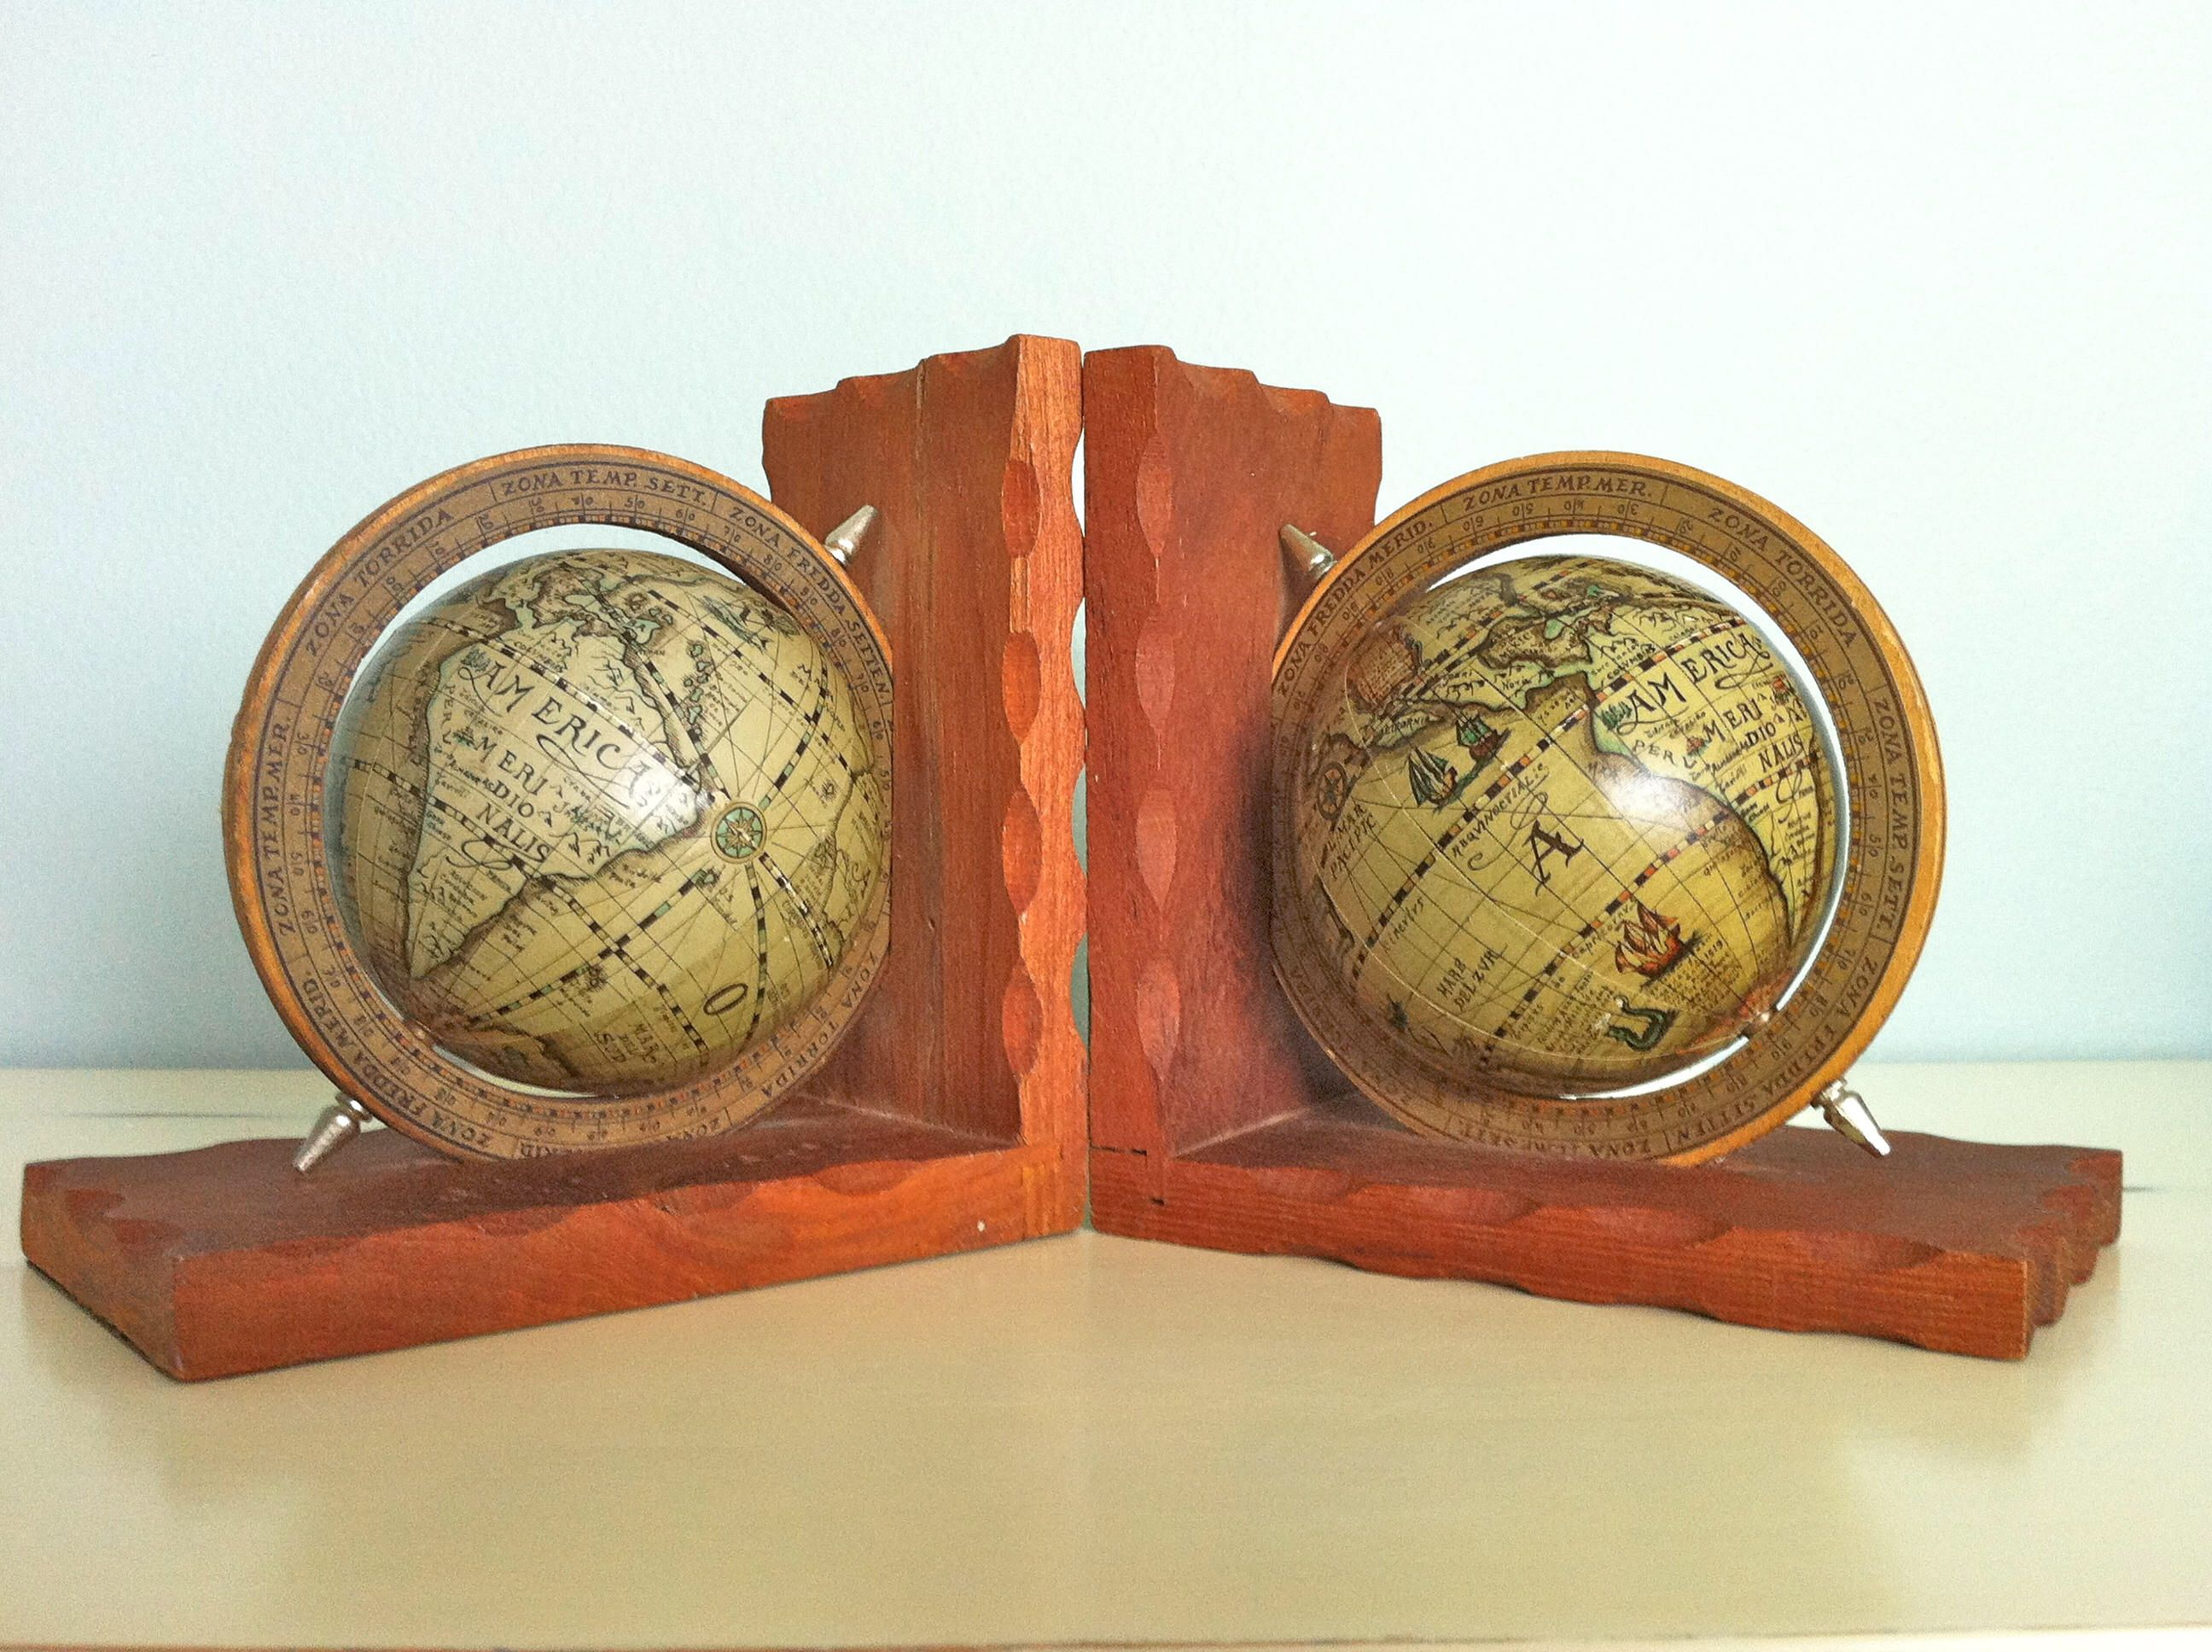 Vintage Globe Bookendsold World Globesantique Globe Bookendsvintage Spinning Globe Bookendsold